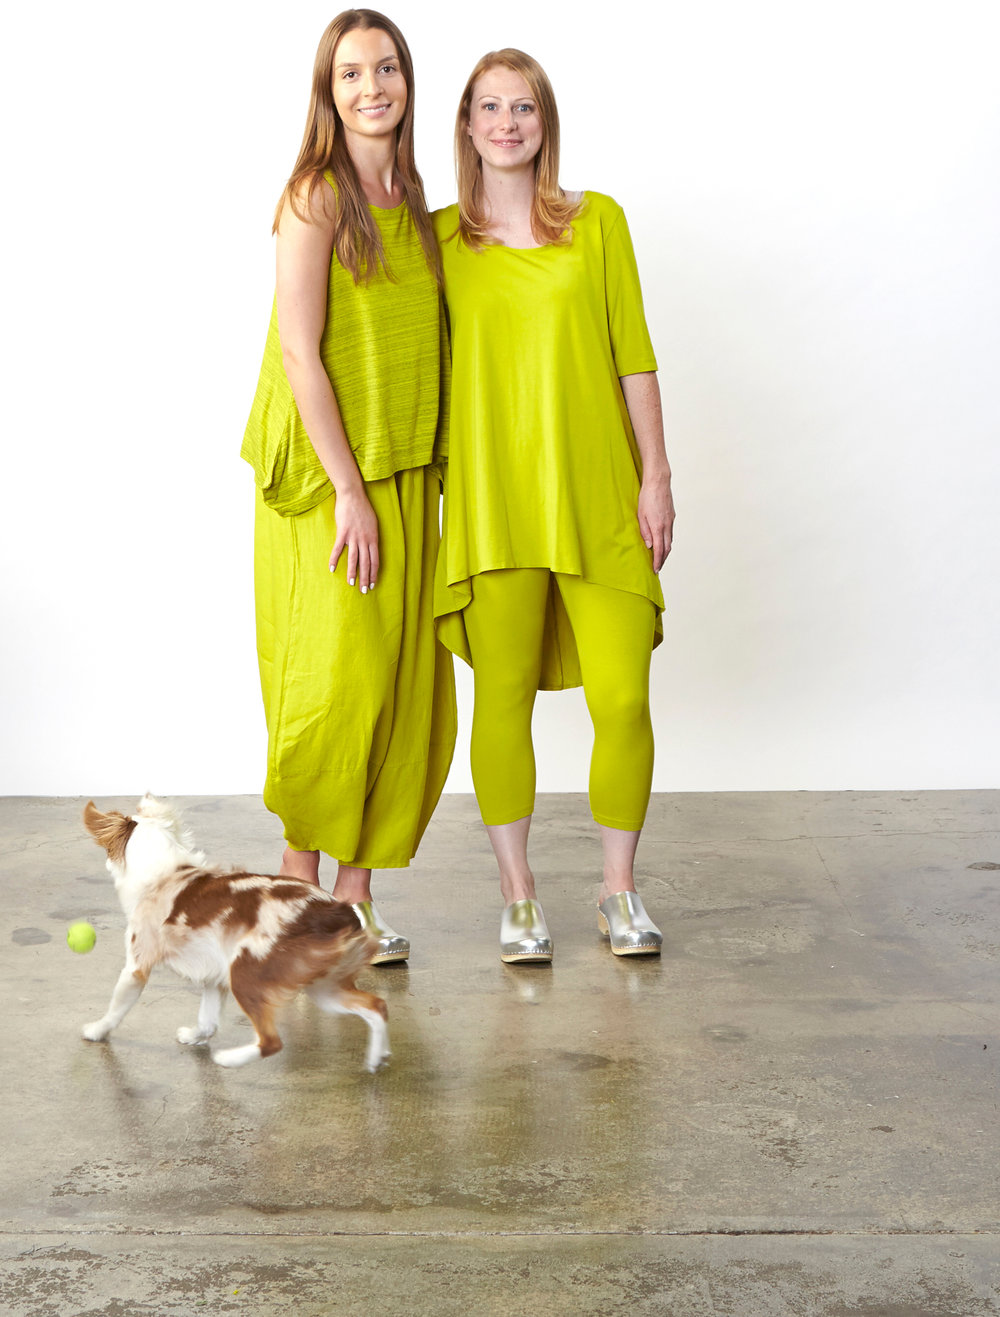 Renee Tank in Limoncello Striped French Terry, Oliver Pant in Limoncello Light Linen, Lilo Tunic, Capri Legging in Limoncello Organic Bamboo Cotton